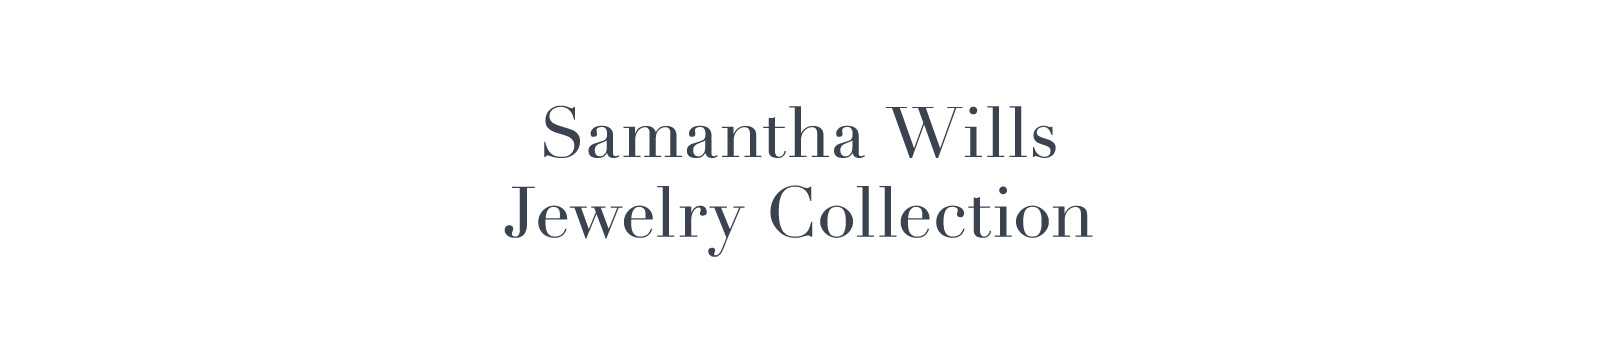 Samantha Wills Jewelry Collection